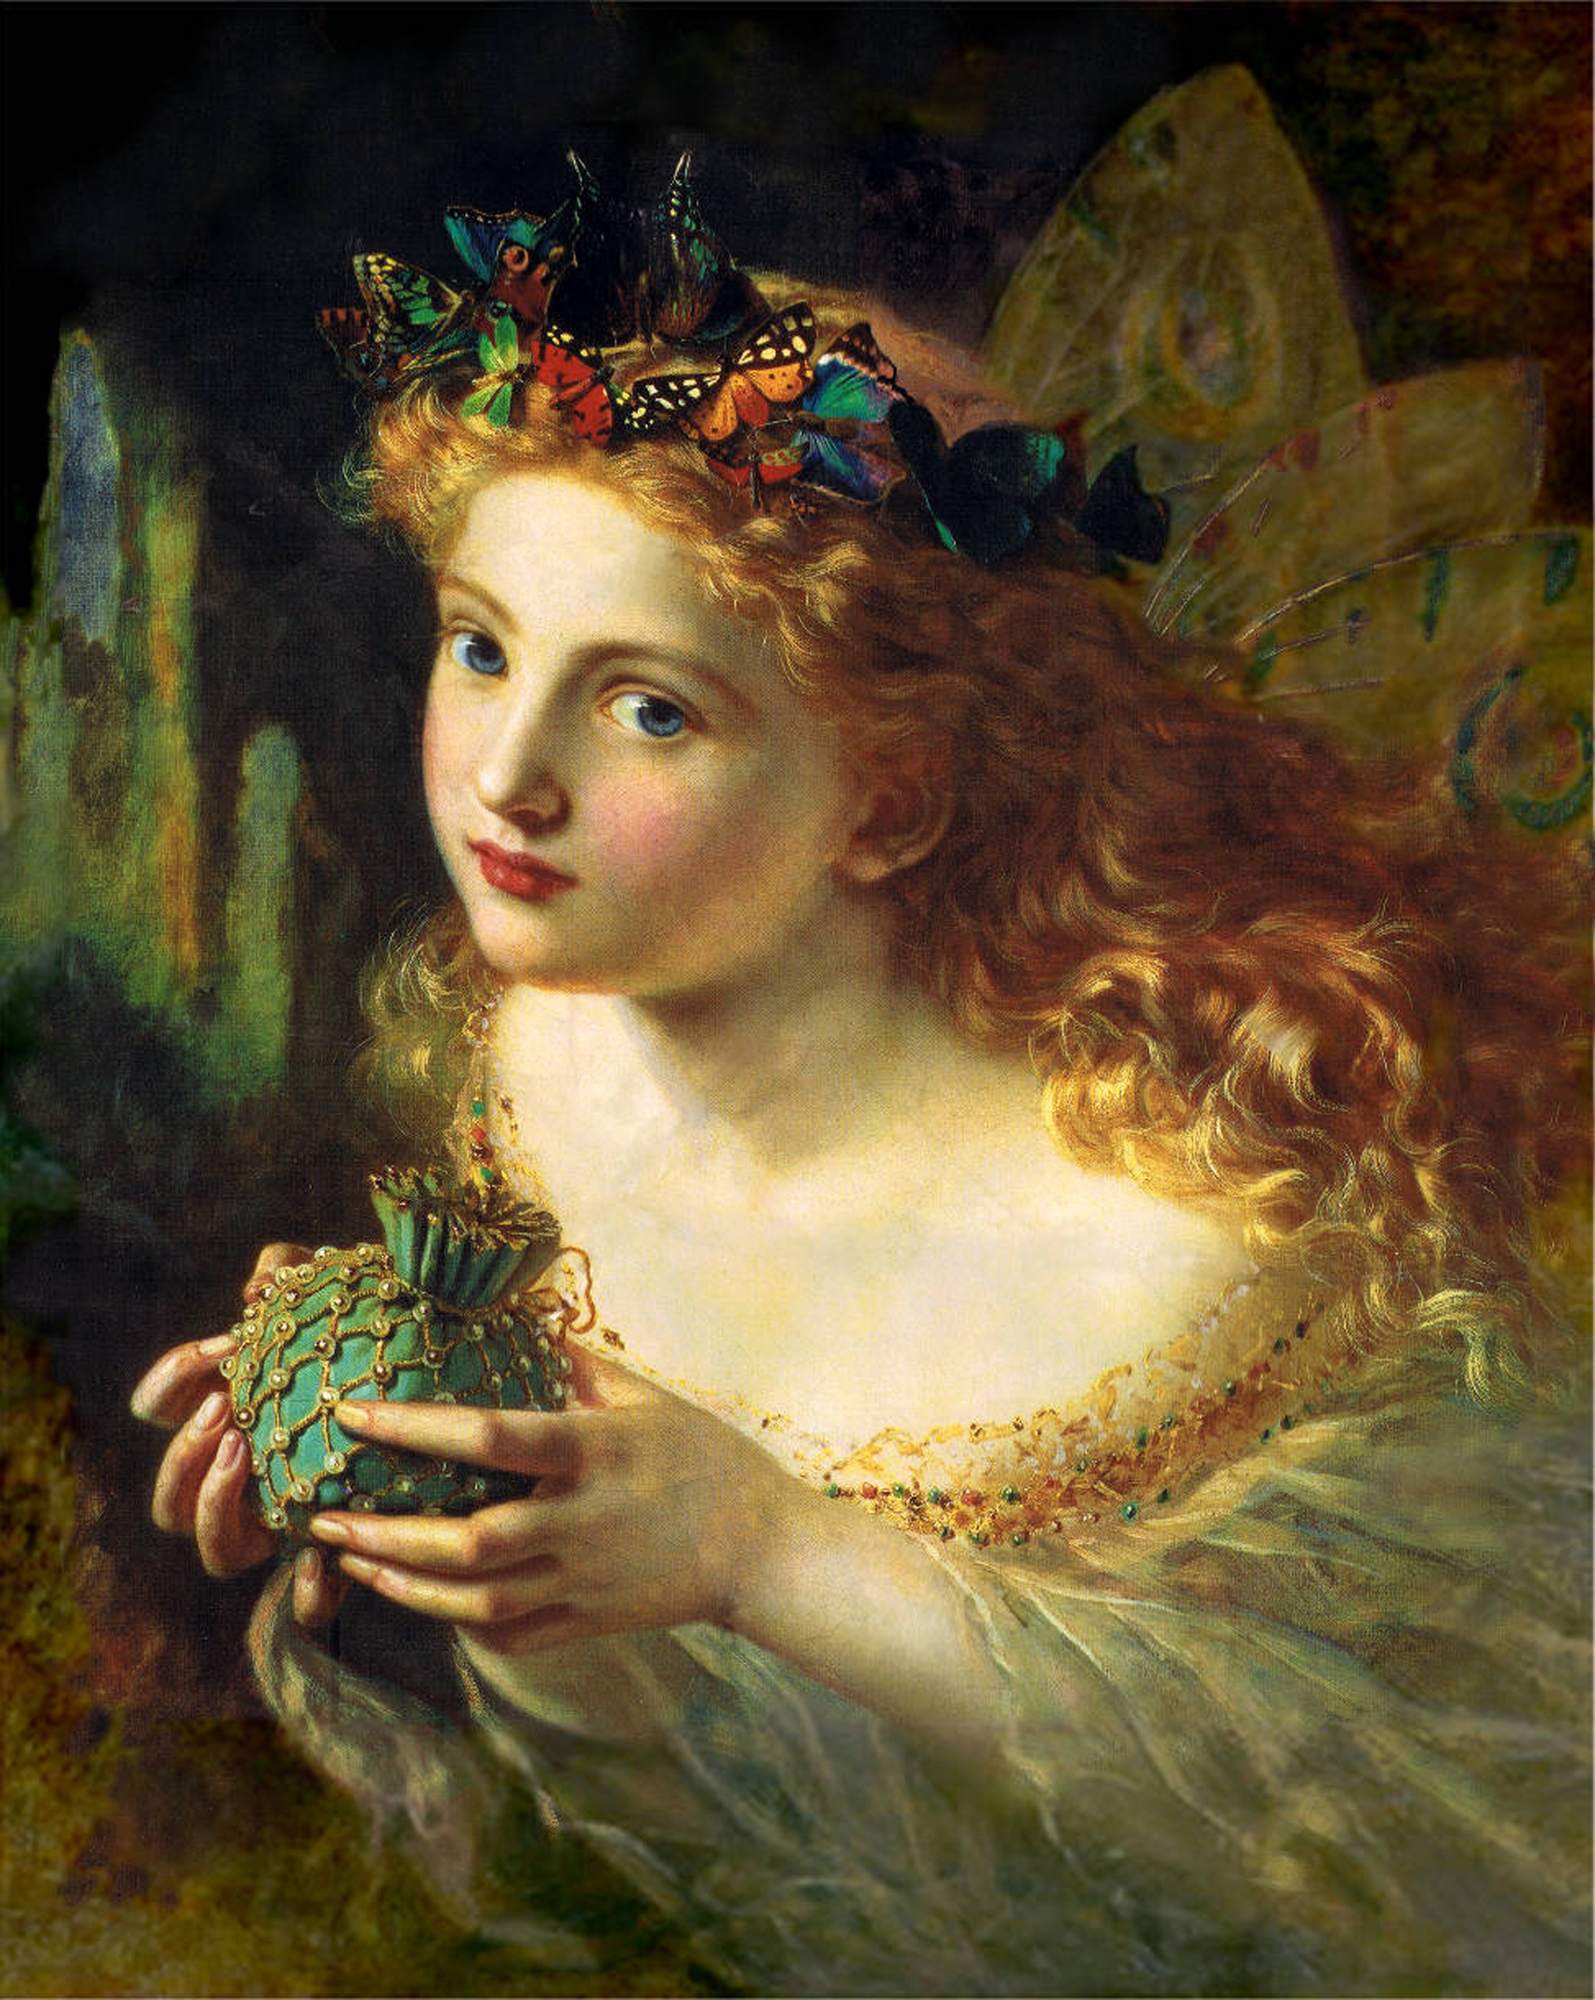 Sophie Anderson Take The Fair Face of Woman AKA The Fairy Queen 19th century